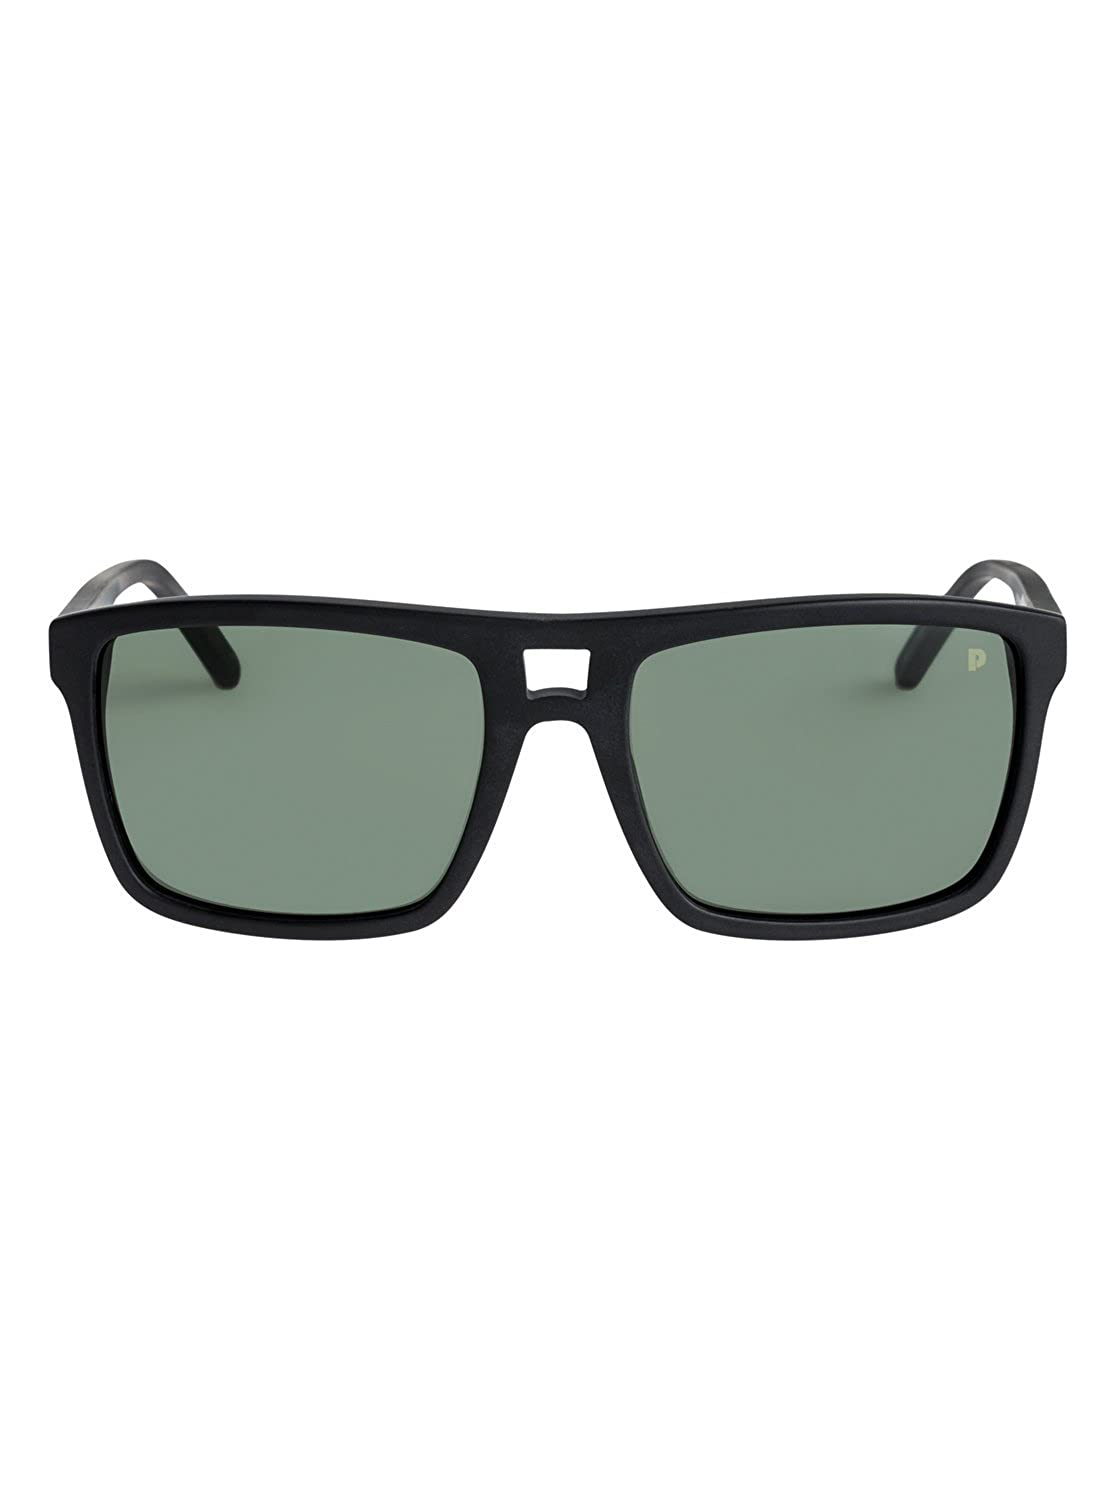 Amazon.com: Quiksilver Brigade Sunglasses - Matte Black ...